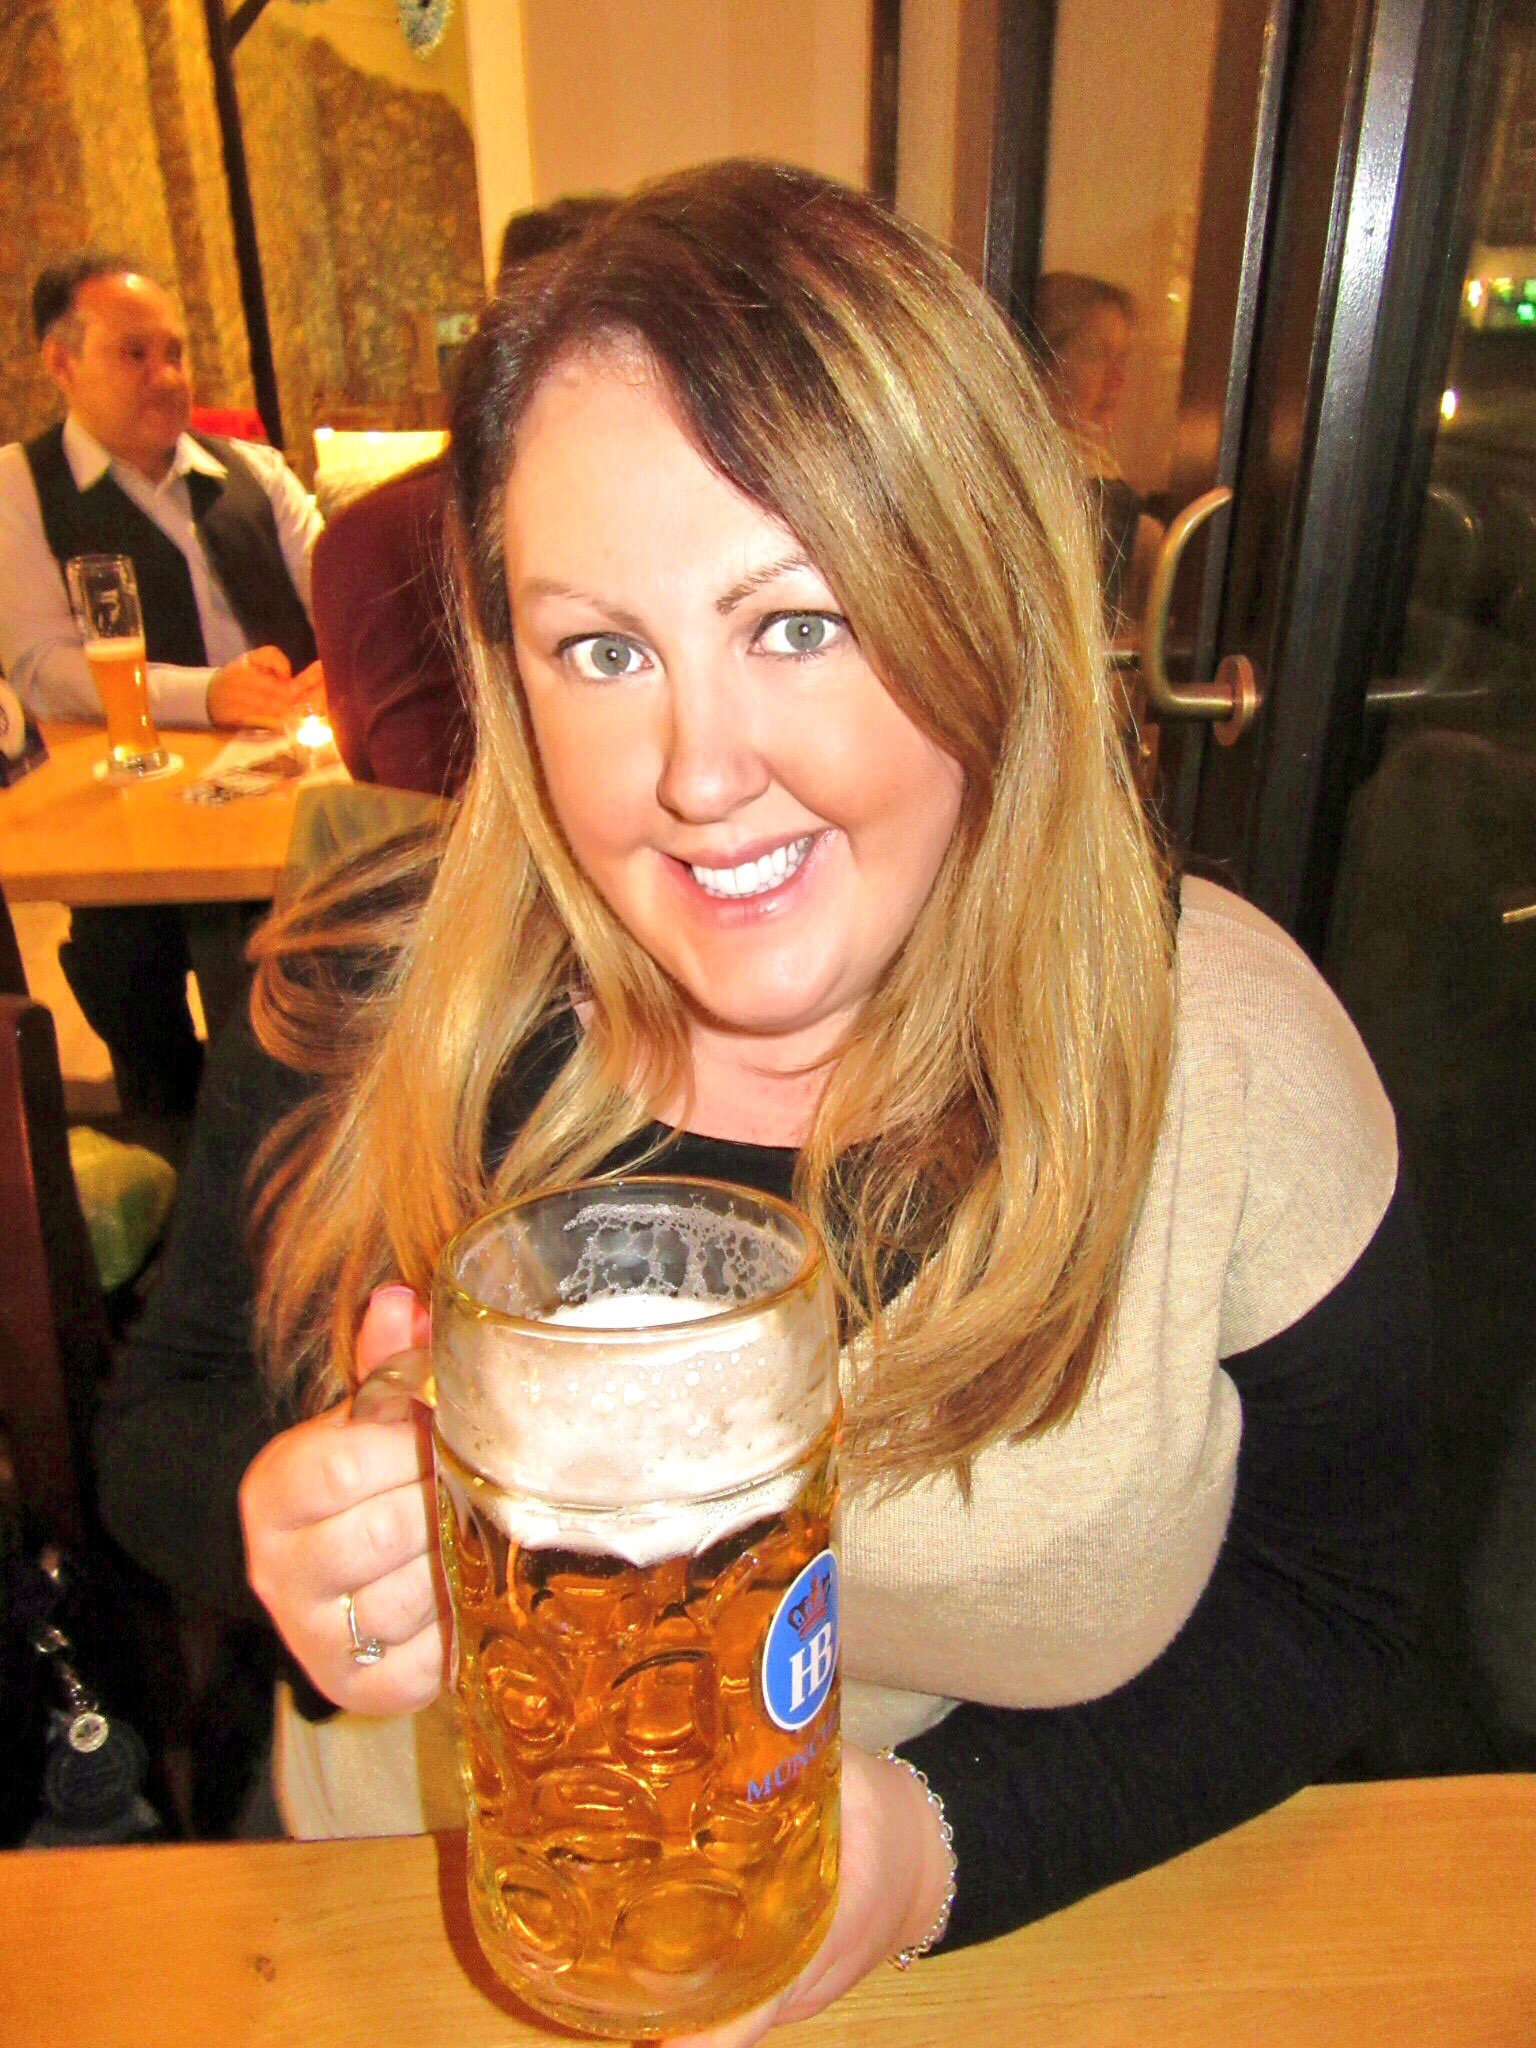 Steins in Hamburg, Germany